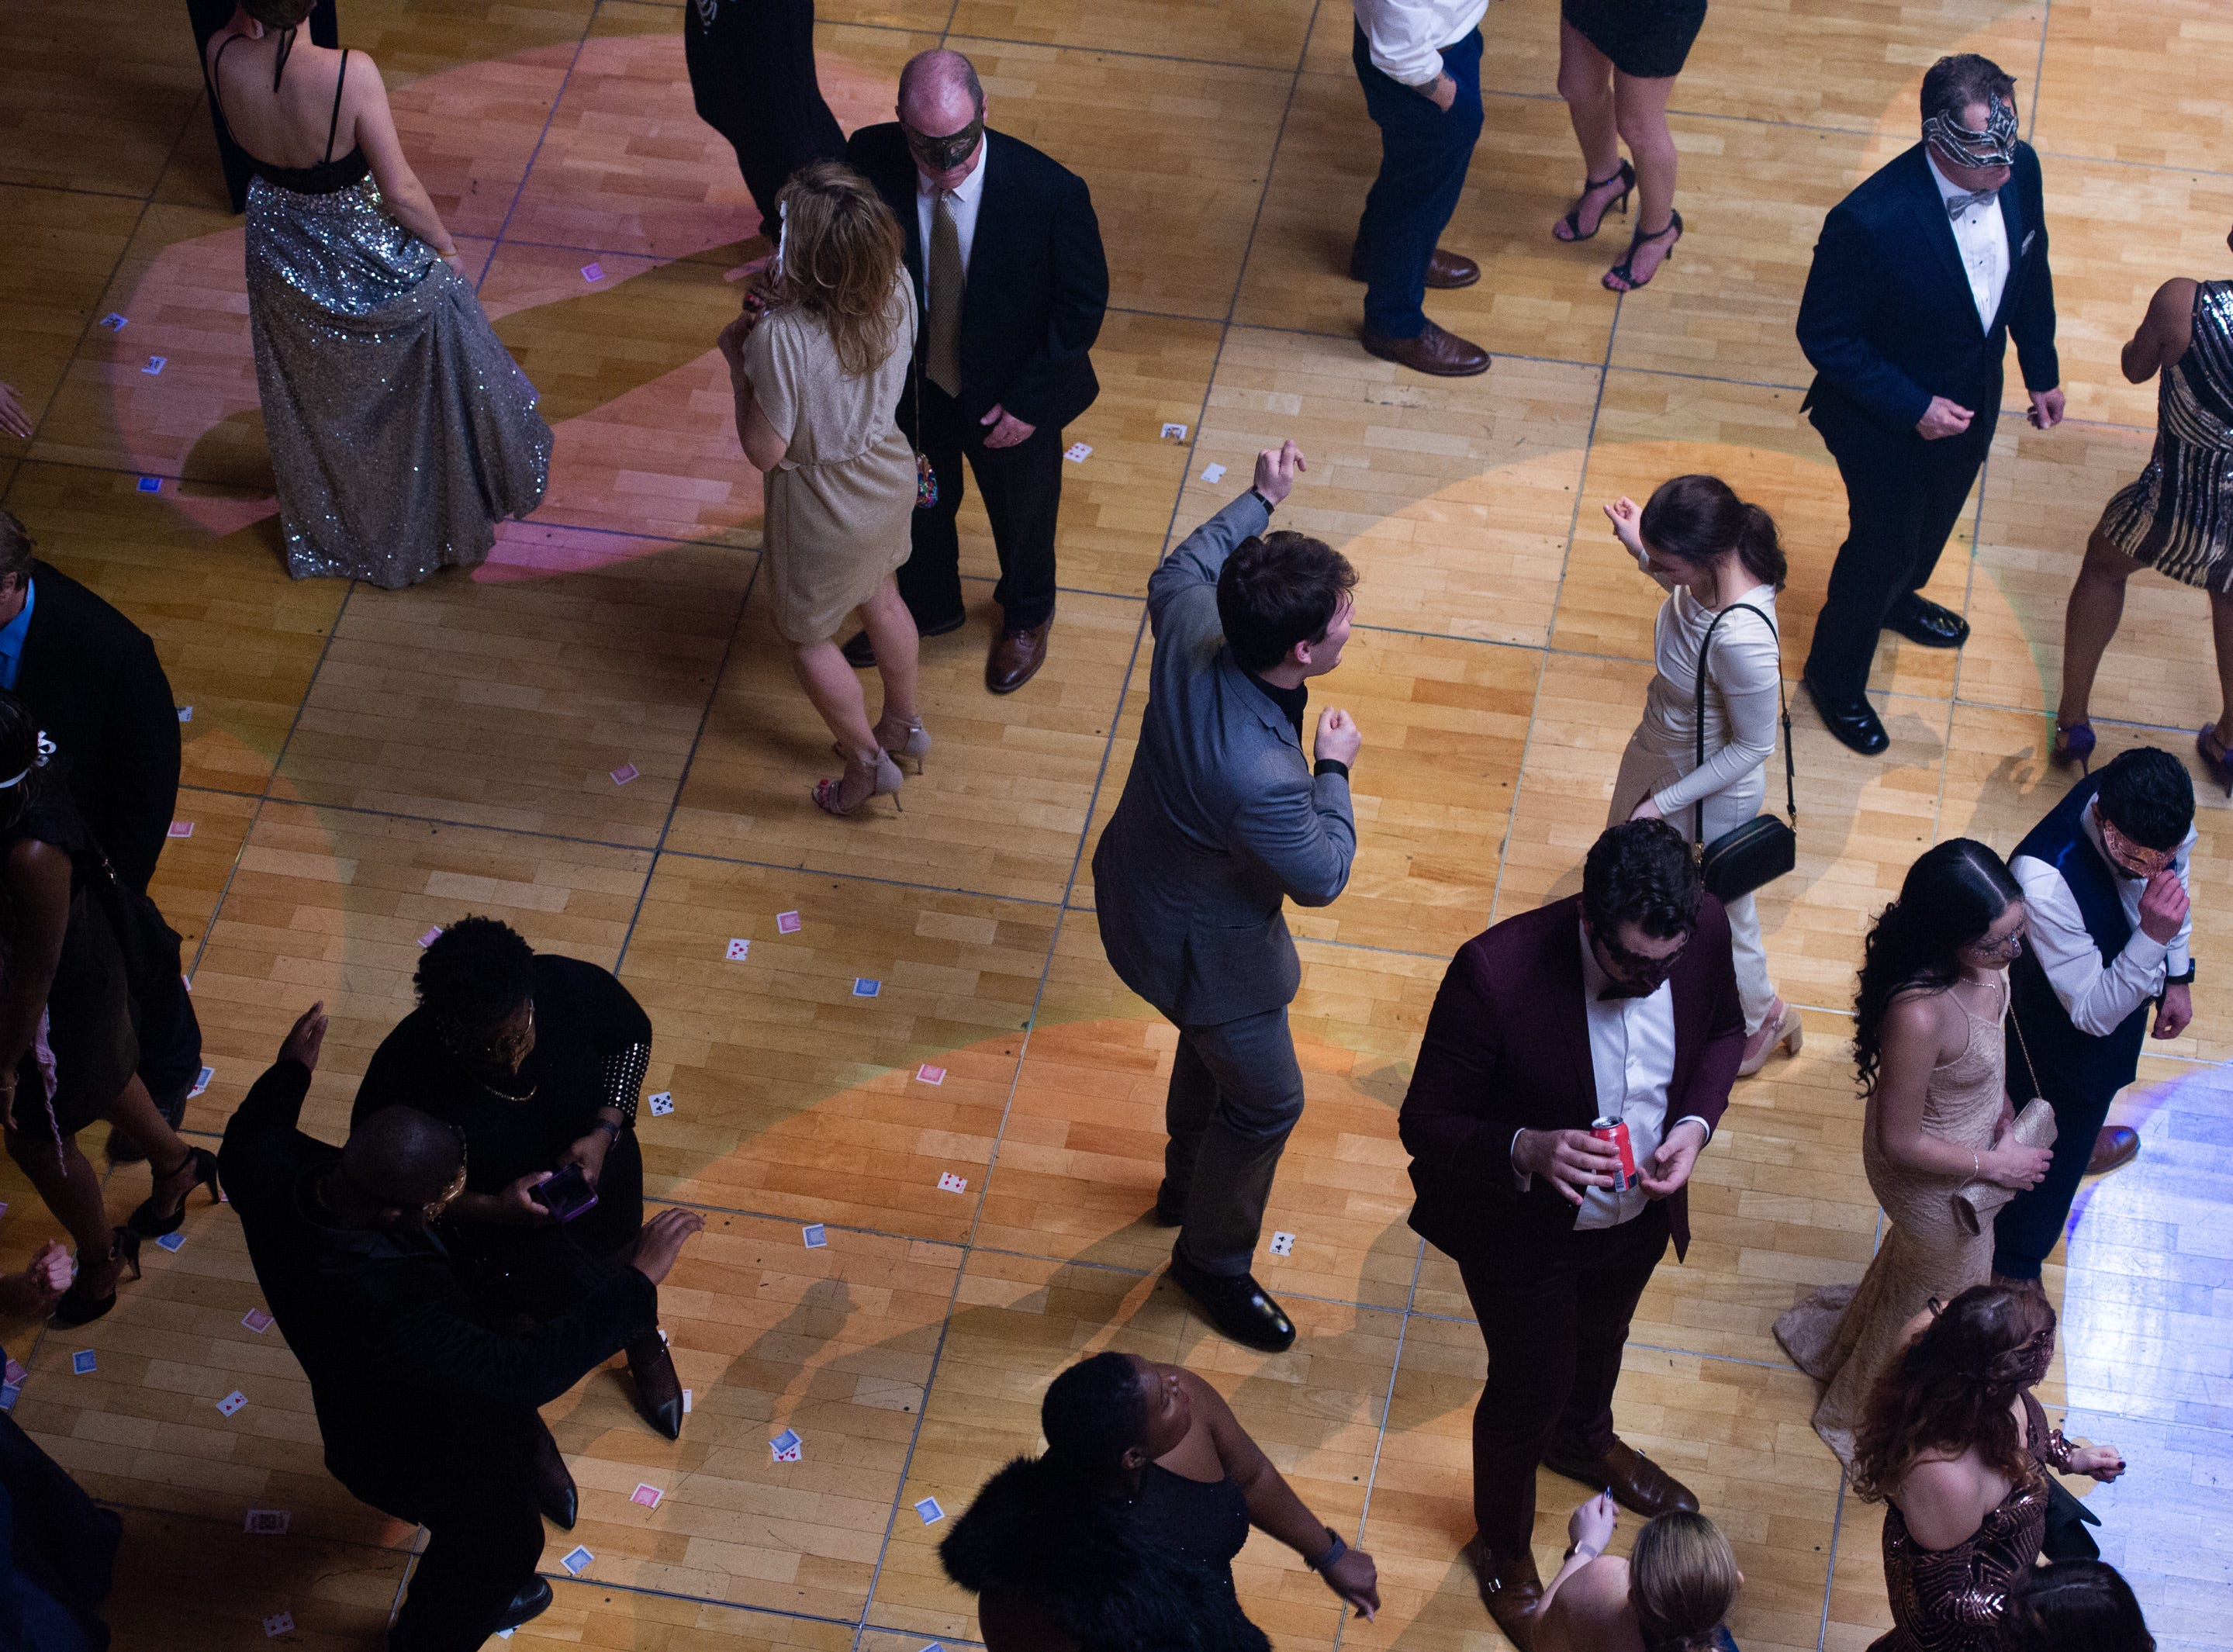 Guests dance on the dance floor Monday, Dec. 31, 2018, at The 12th Annual Indy Masquerade held at Union Station in Indianapolis.